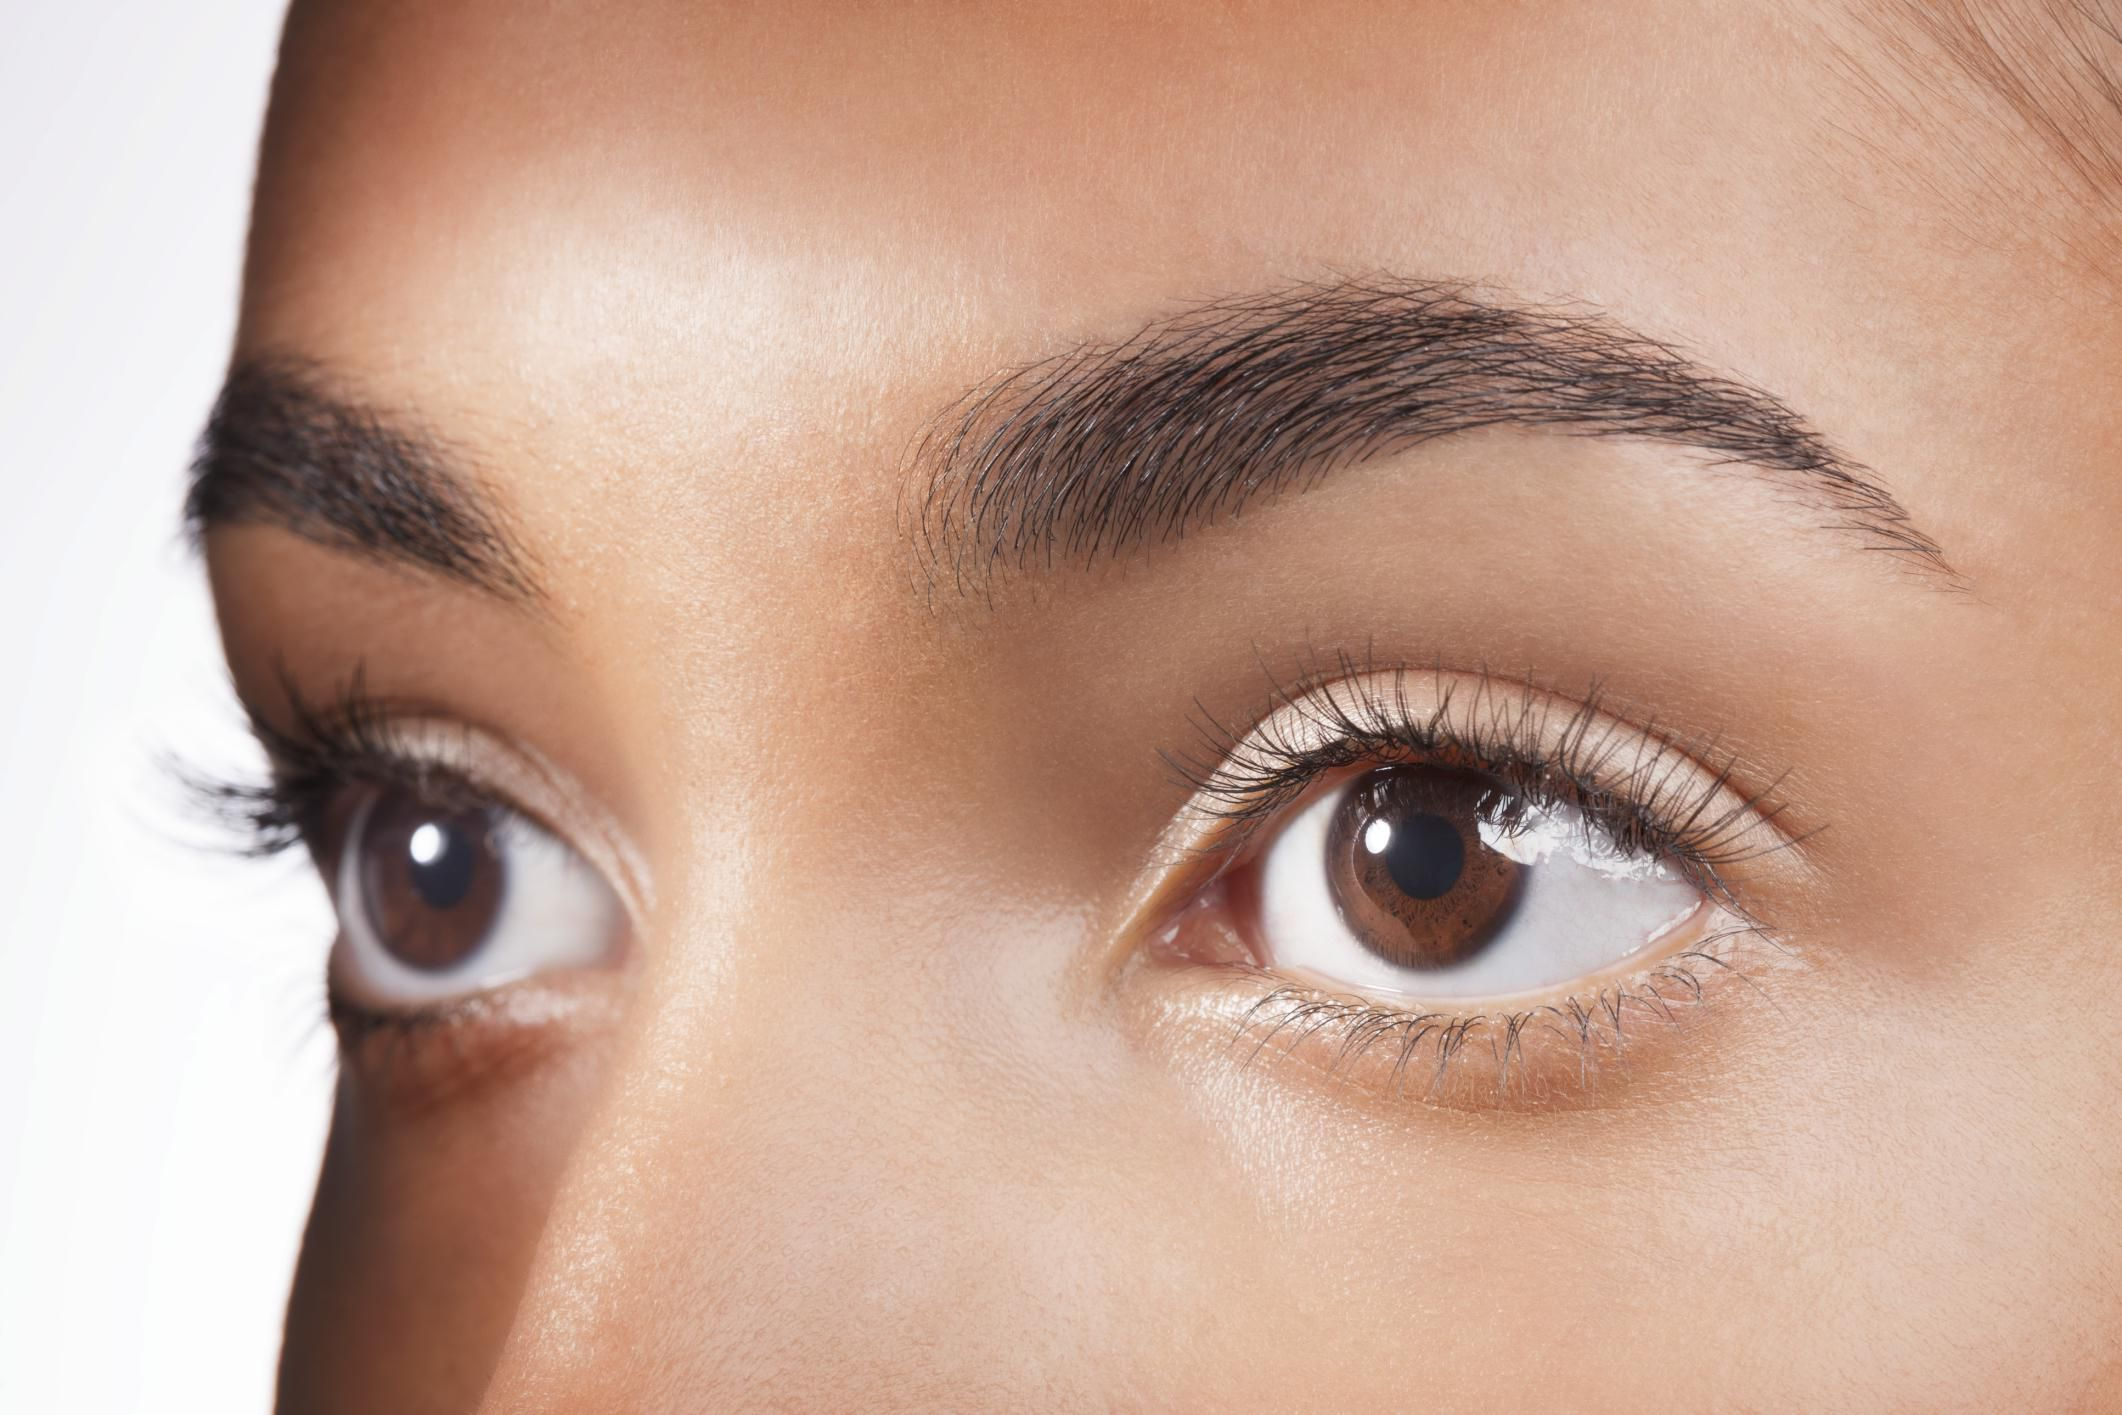 How To Make Wax At Home For Eyebrows